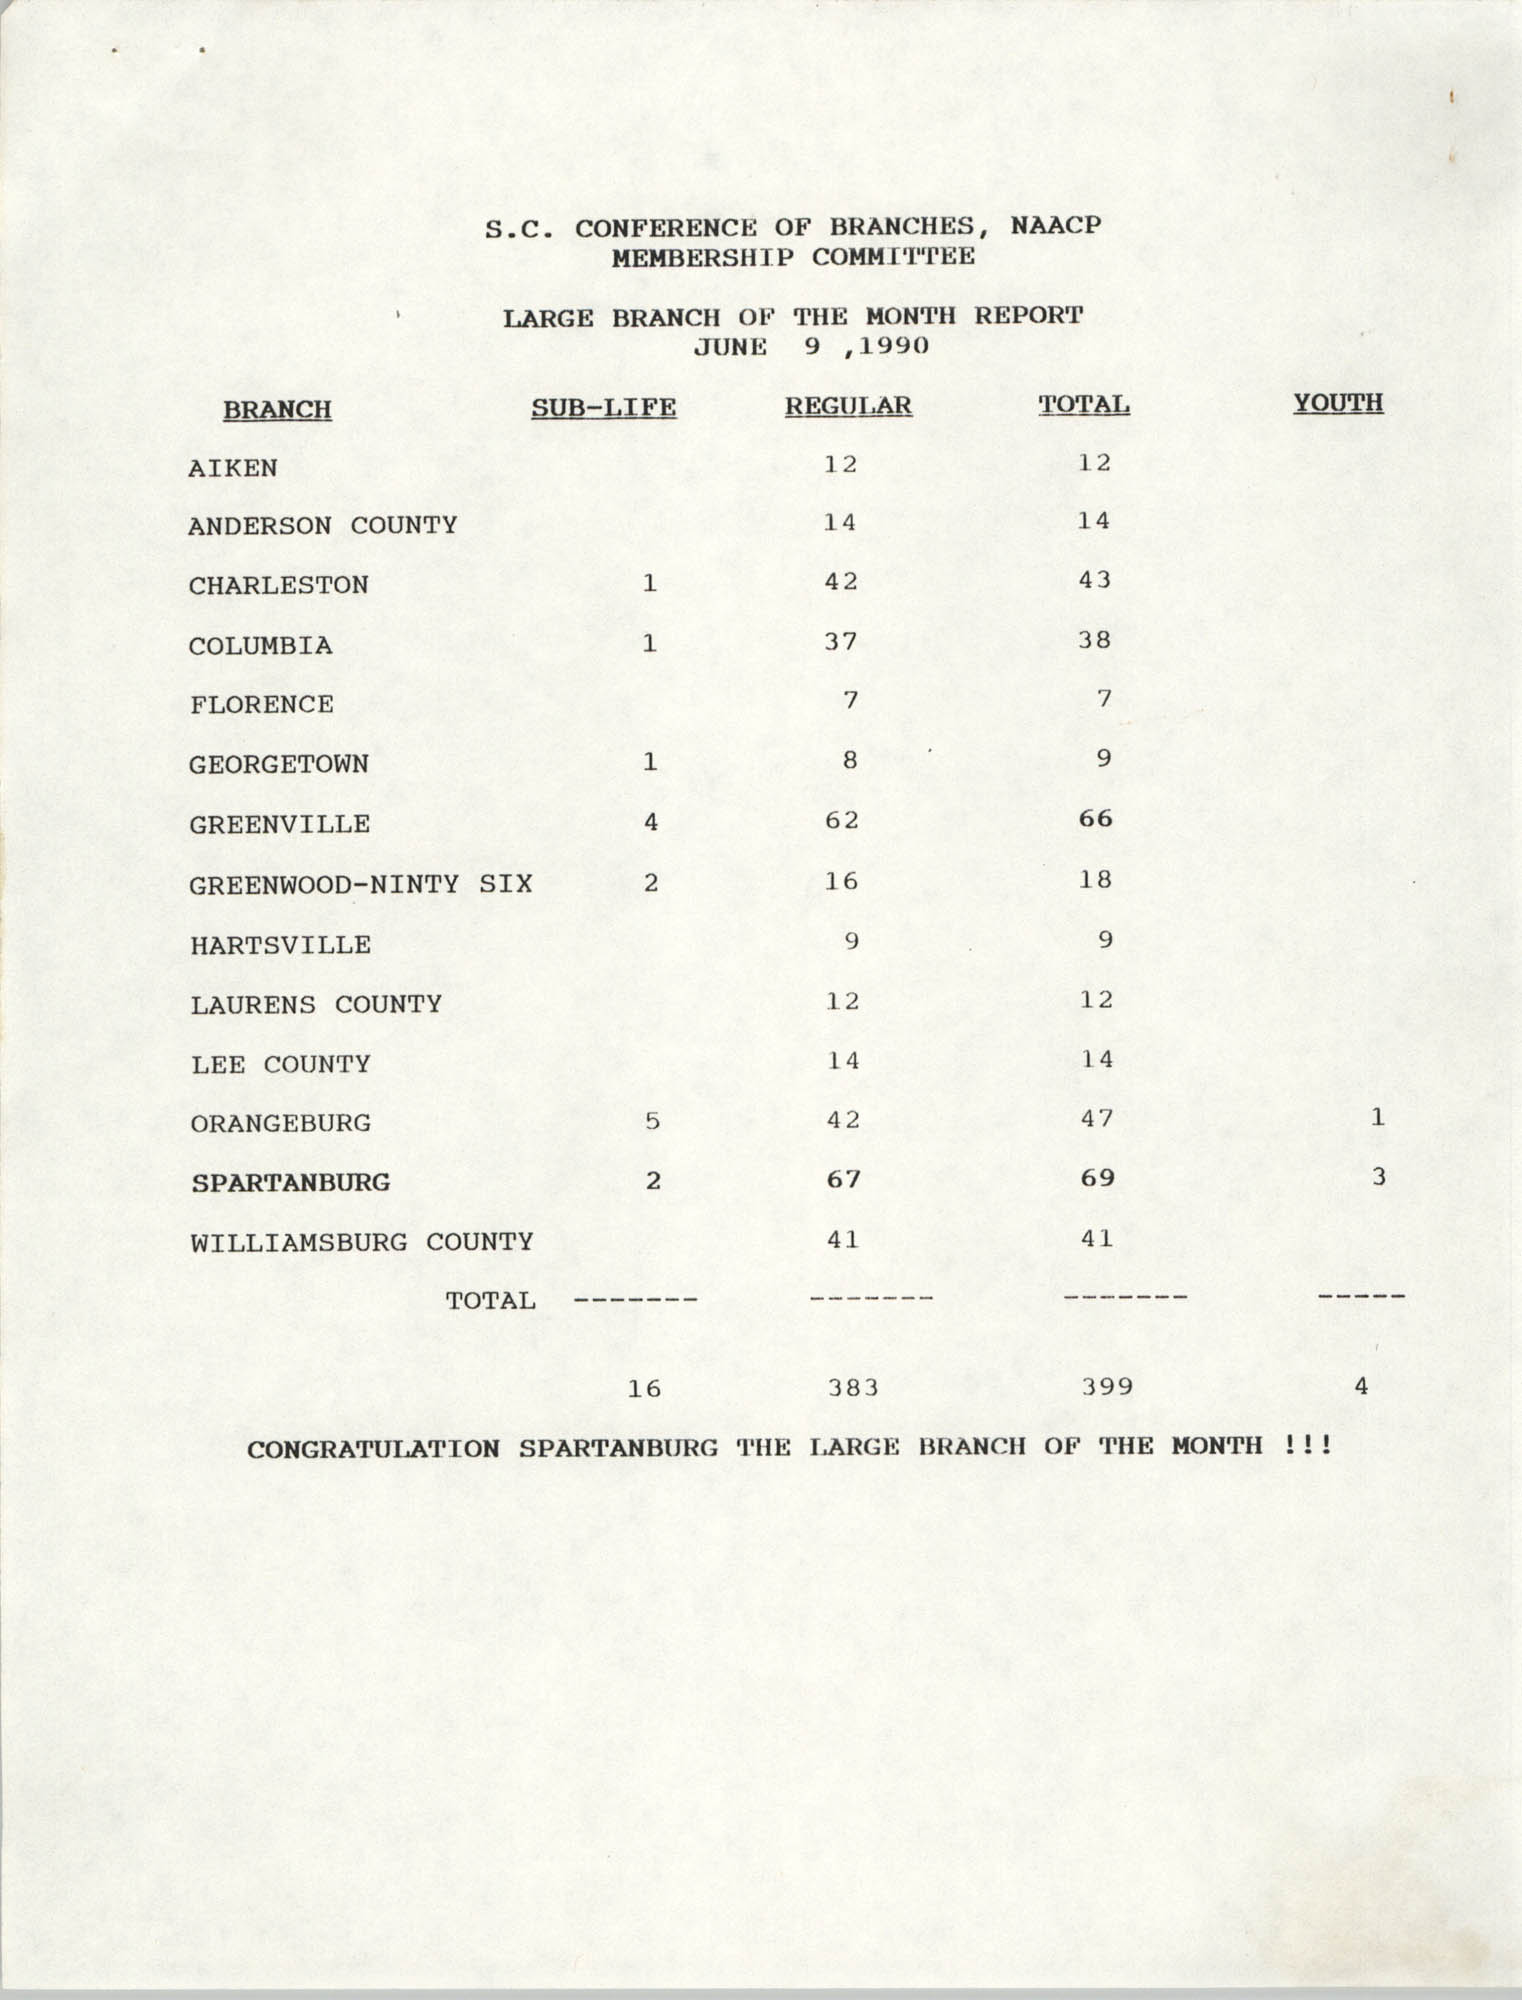 Small and Large Branch of the Month Reports, South Carolina Conference of Branches of the NAACP, June 9, 1990